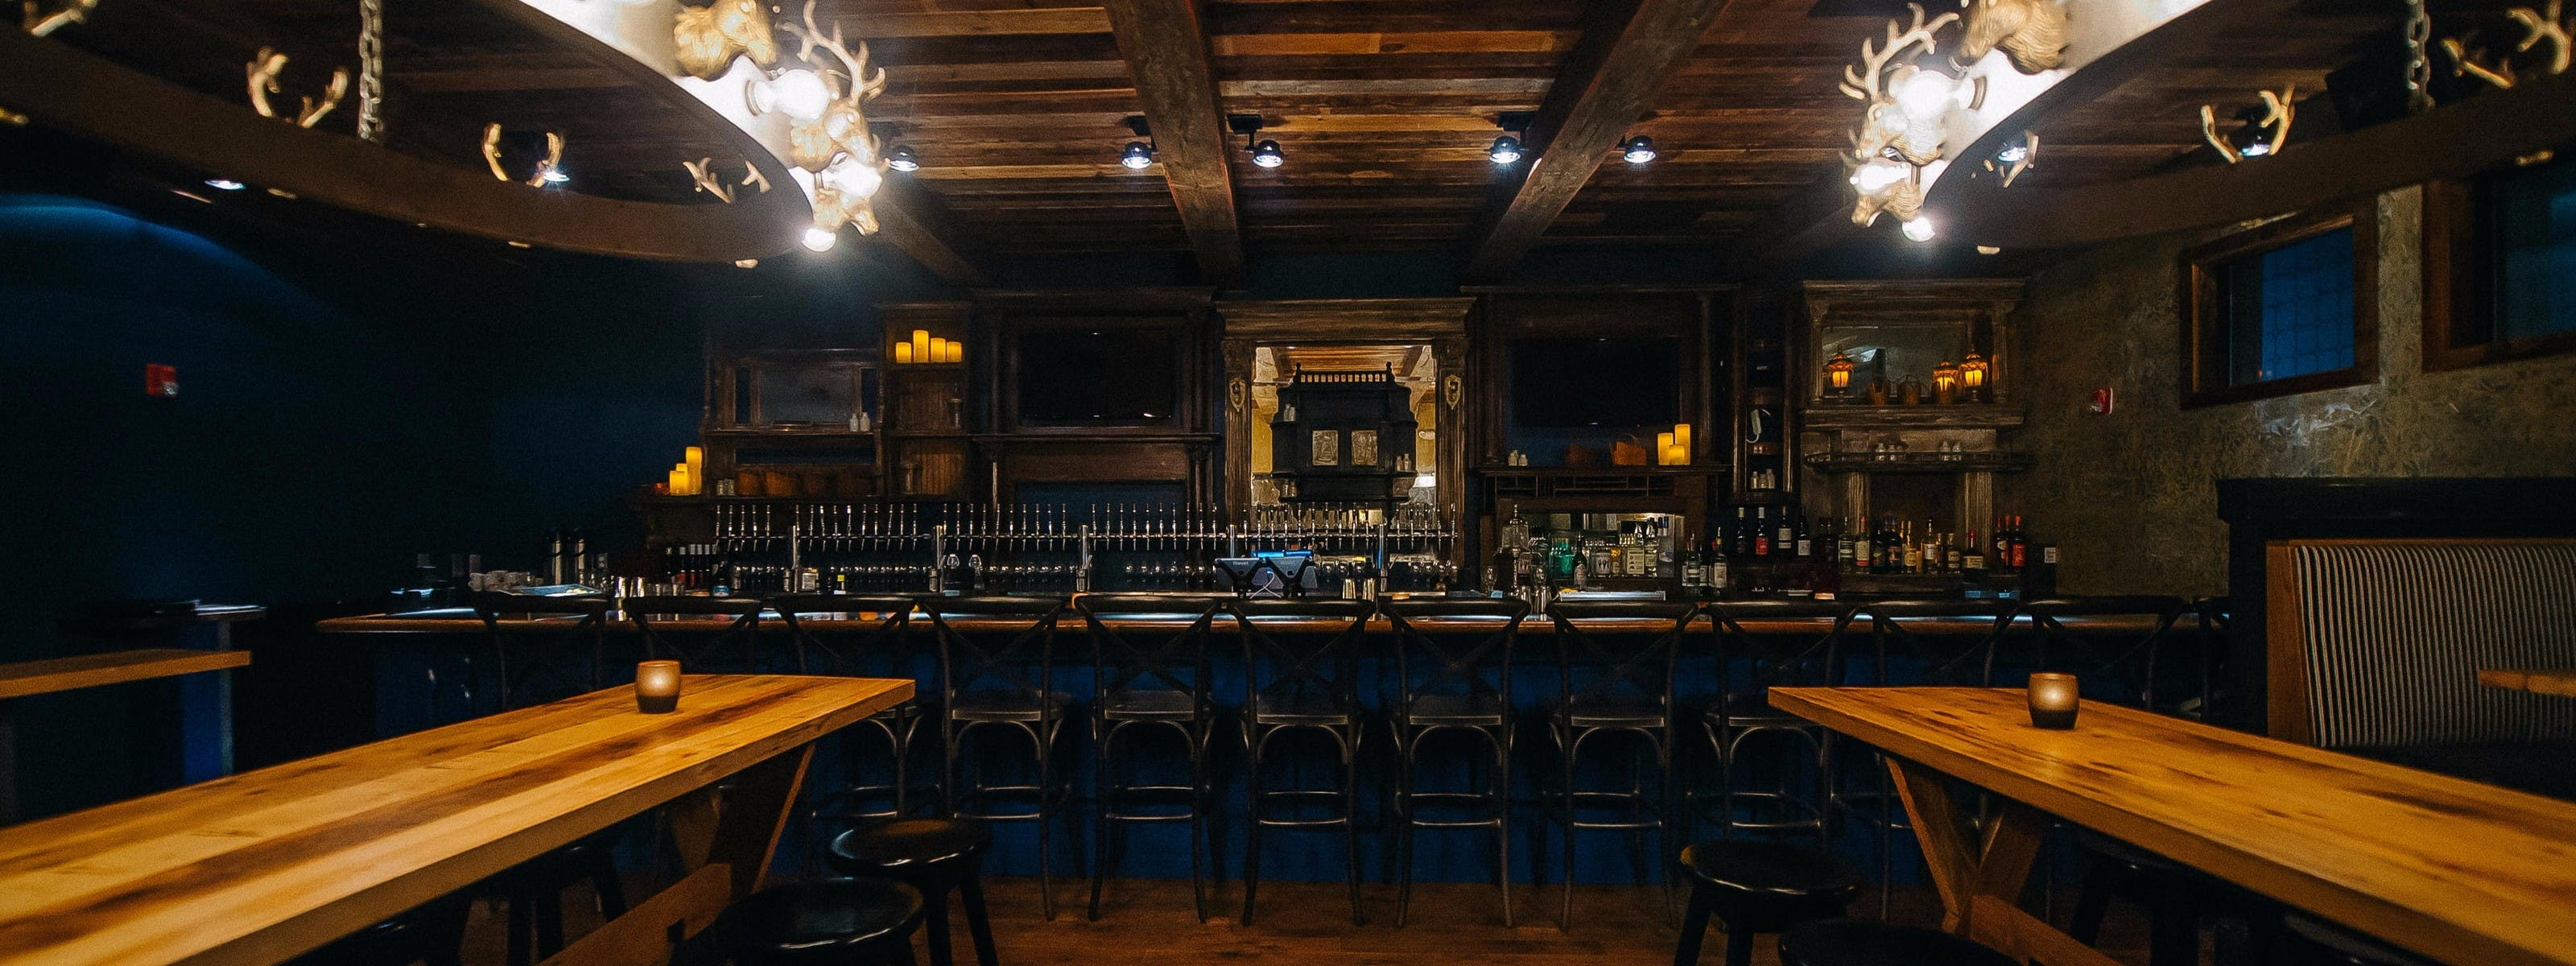 The Best Georgetown Restaurants And Bars - Georgetown - Washington DC - The Infatuation